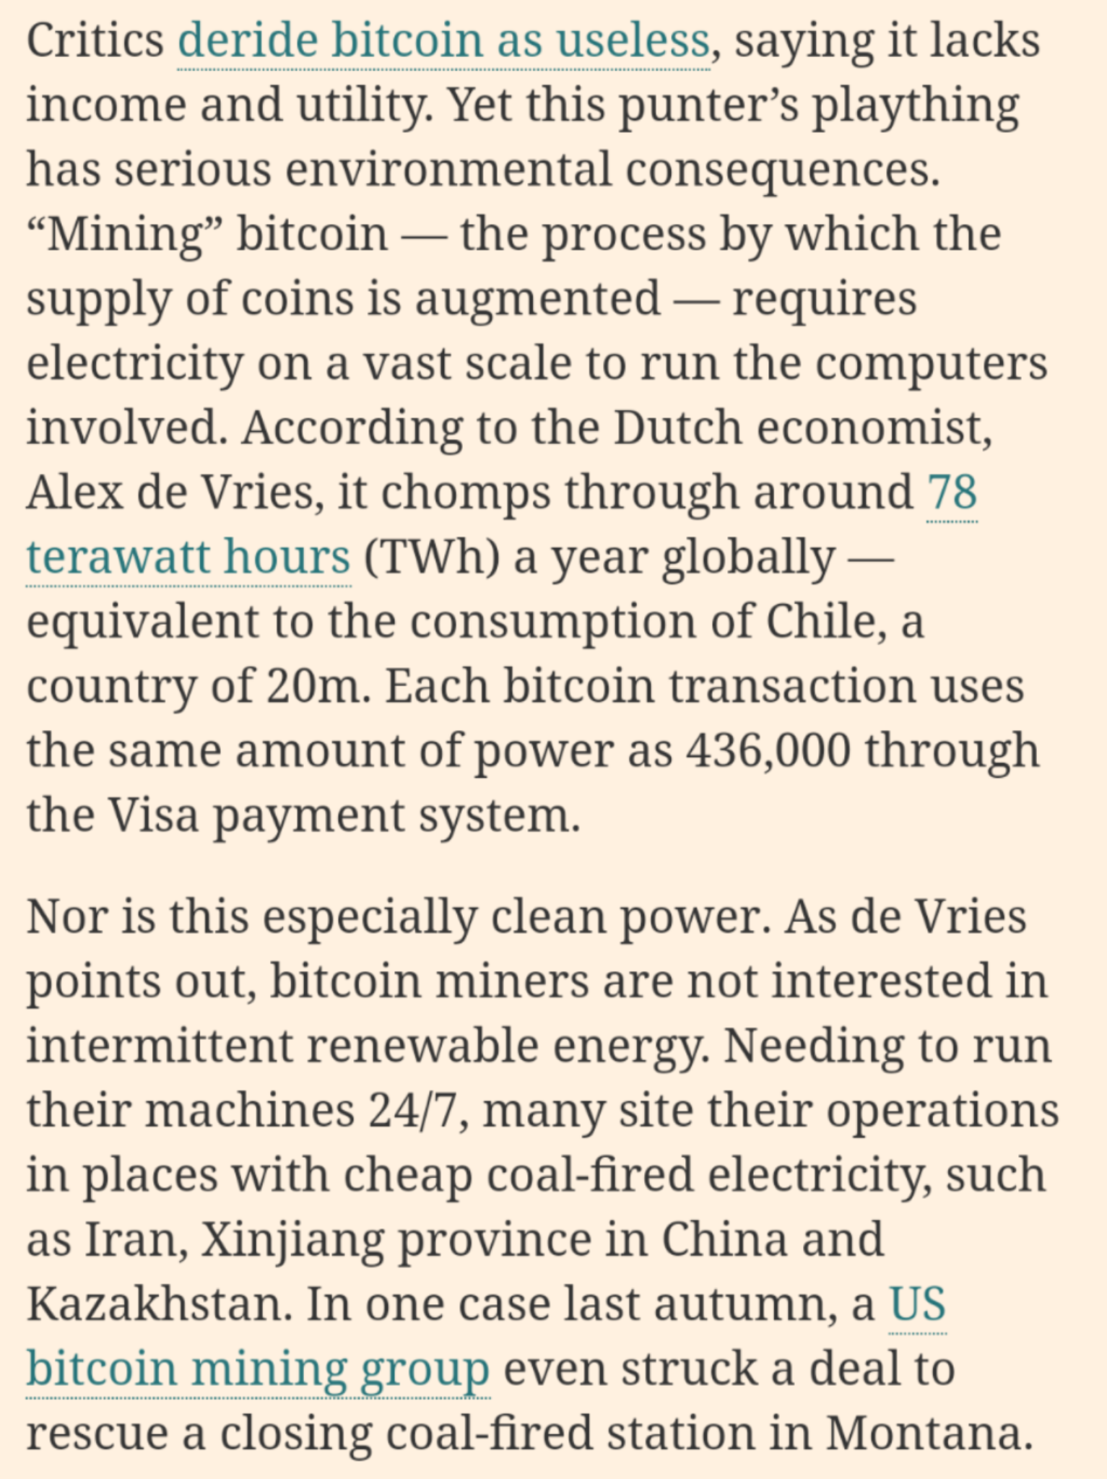 "Critics deride bitcoin as useless, saying it lacks income and utility. Yet this punter's plaything has serious environmental consequences. ""Mining"" bitcoin — the process by which the supply of coins is augmented — requires electricity on a vast scale to run the computers involved. According to the Dutch economist, Alex de Vries, it chomps through around 78 terawatt hours (TWh) a year globally — equivalent to the consumption of Chile, a country of 20m. Each bitcoin transaction uses the same amount of power as 436,000 through the Visa payment system.  Nor is this especially clean power. As de Vries points out, bitcoin miners are not interested in intermittent renewable energy. Needing to run their machines 24/7, many site their operations in places with cheap coal-fired electricity, such as Iran, Xinjiang province in China and Kazakhstan. In one case last autumn, a US bitcoin mining group even struck a deal to rescue a closing coal-fired station in Montana."